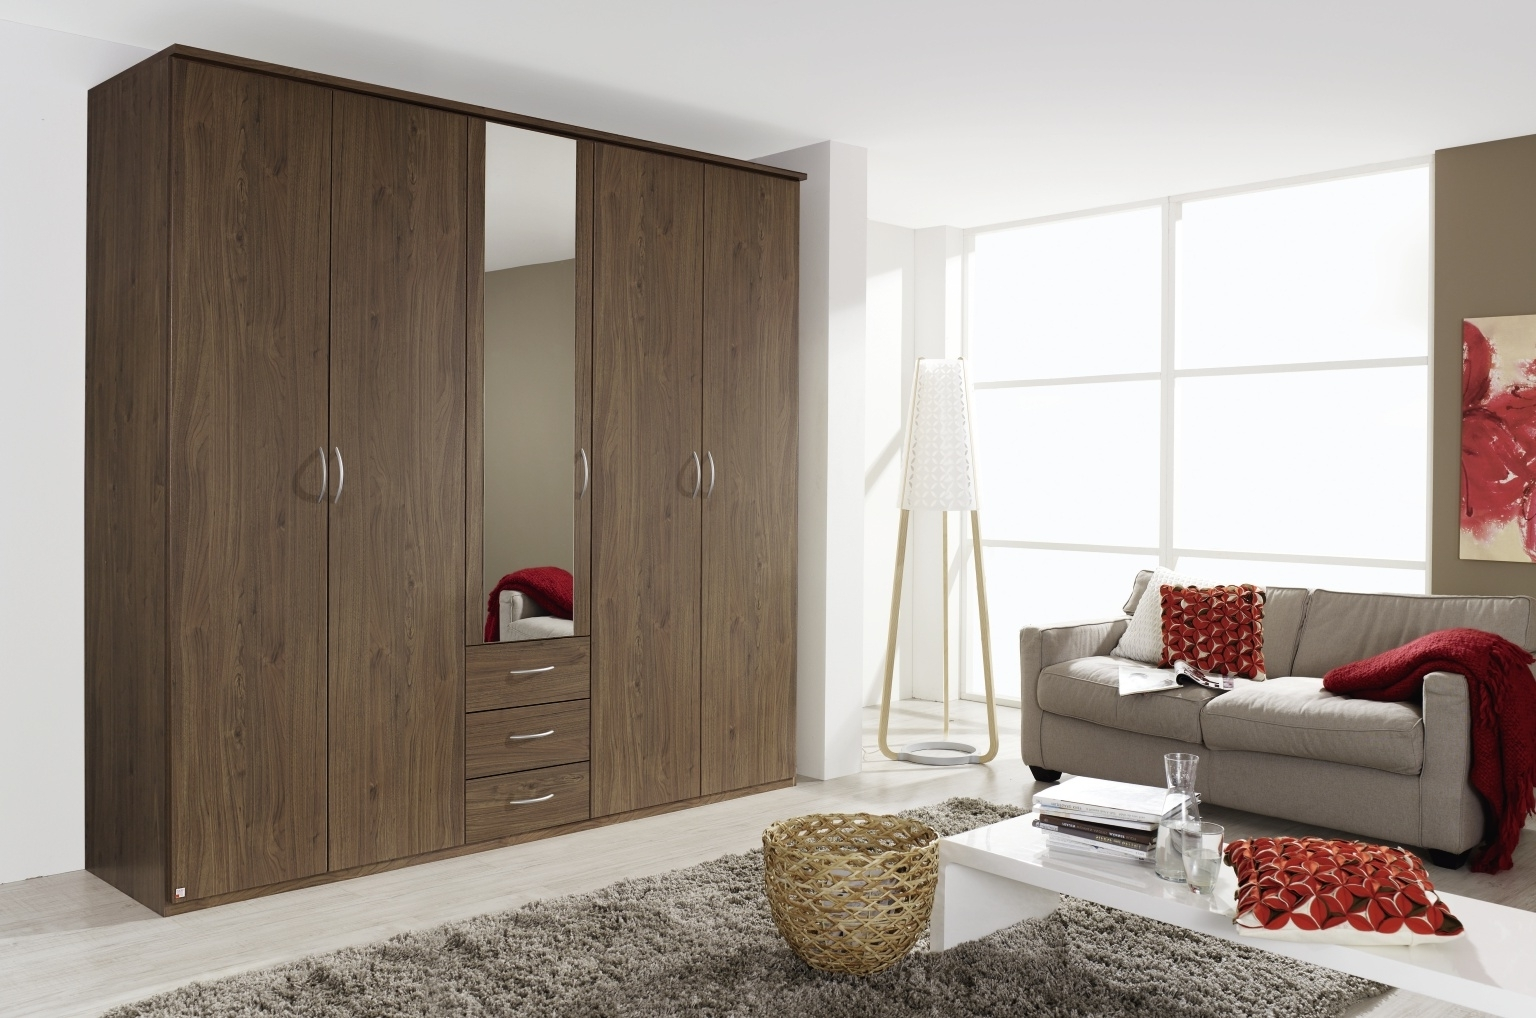 Rauch Kent Wardrobes – Furniture Brothers With Regard To Trendy Rauch Wardrobes (Gallery 5 of 15)